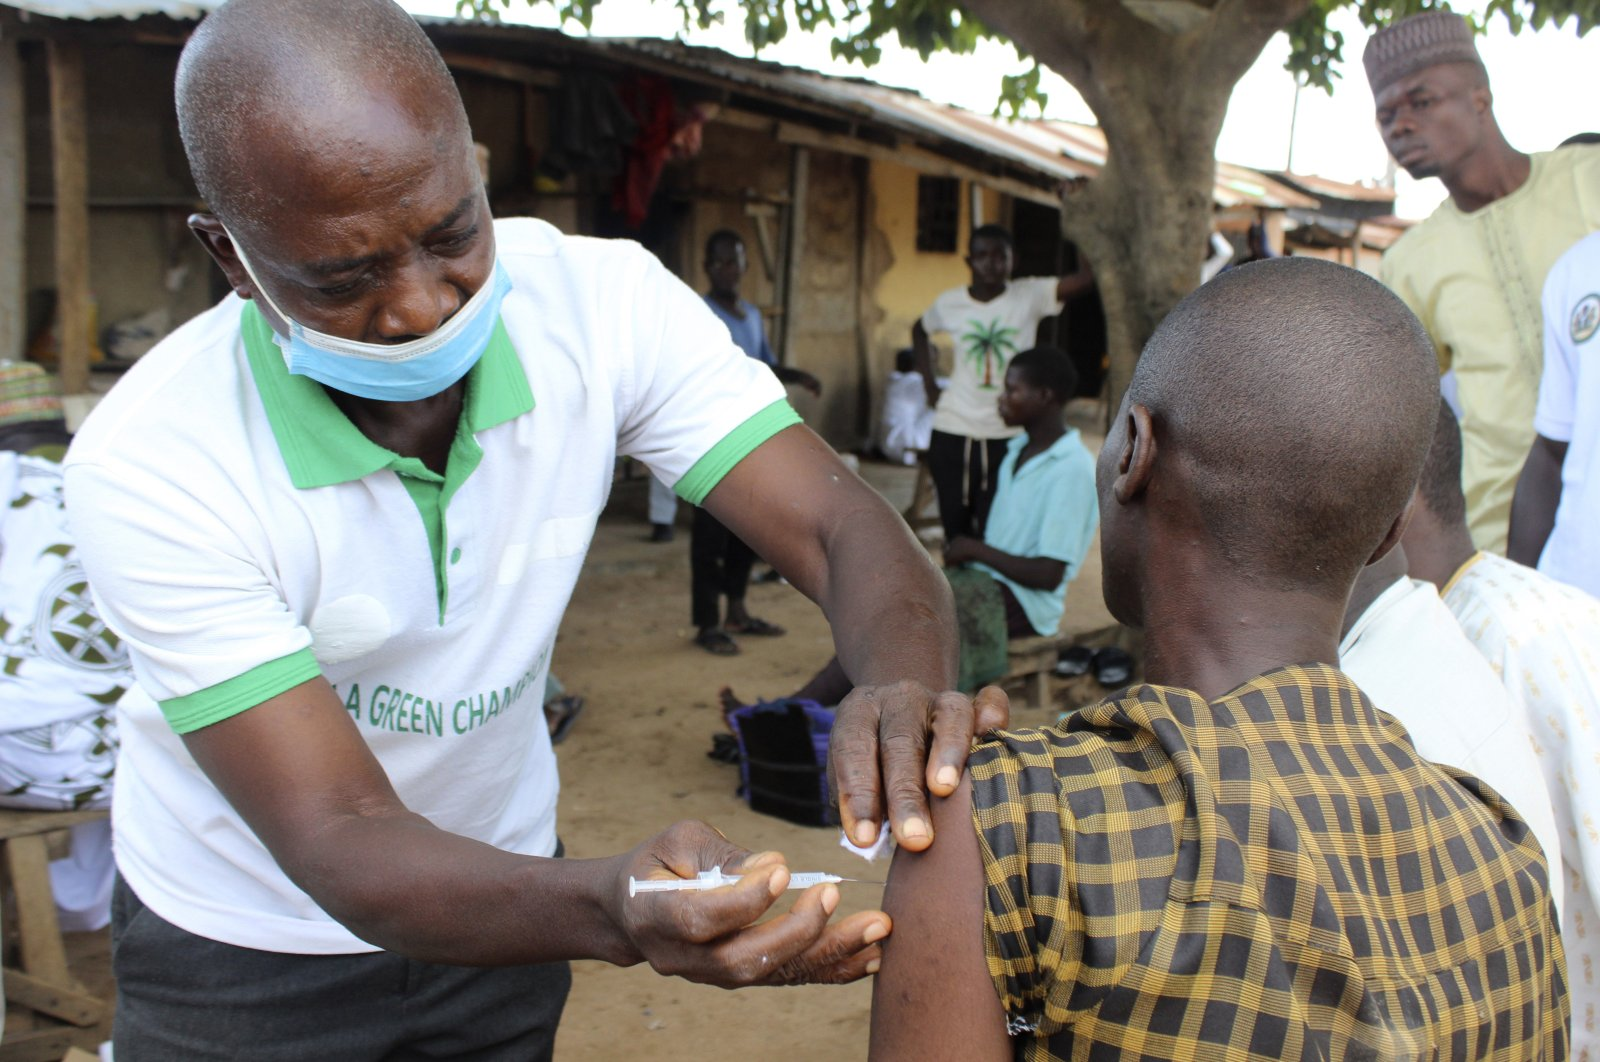 A Muslim man is administered a Moderna COVID-19 vaccination outside the Kuje, Central Mosque outskirts of Abuja, Nigeria, Oct. 8, 2021. (AP Photo)